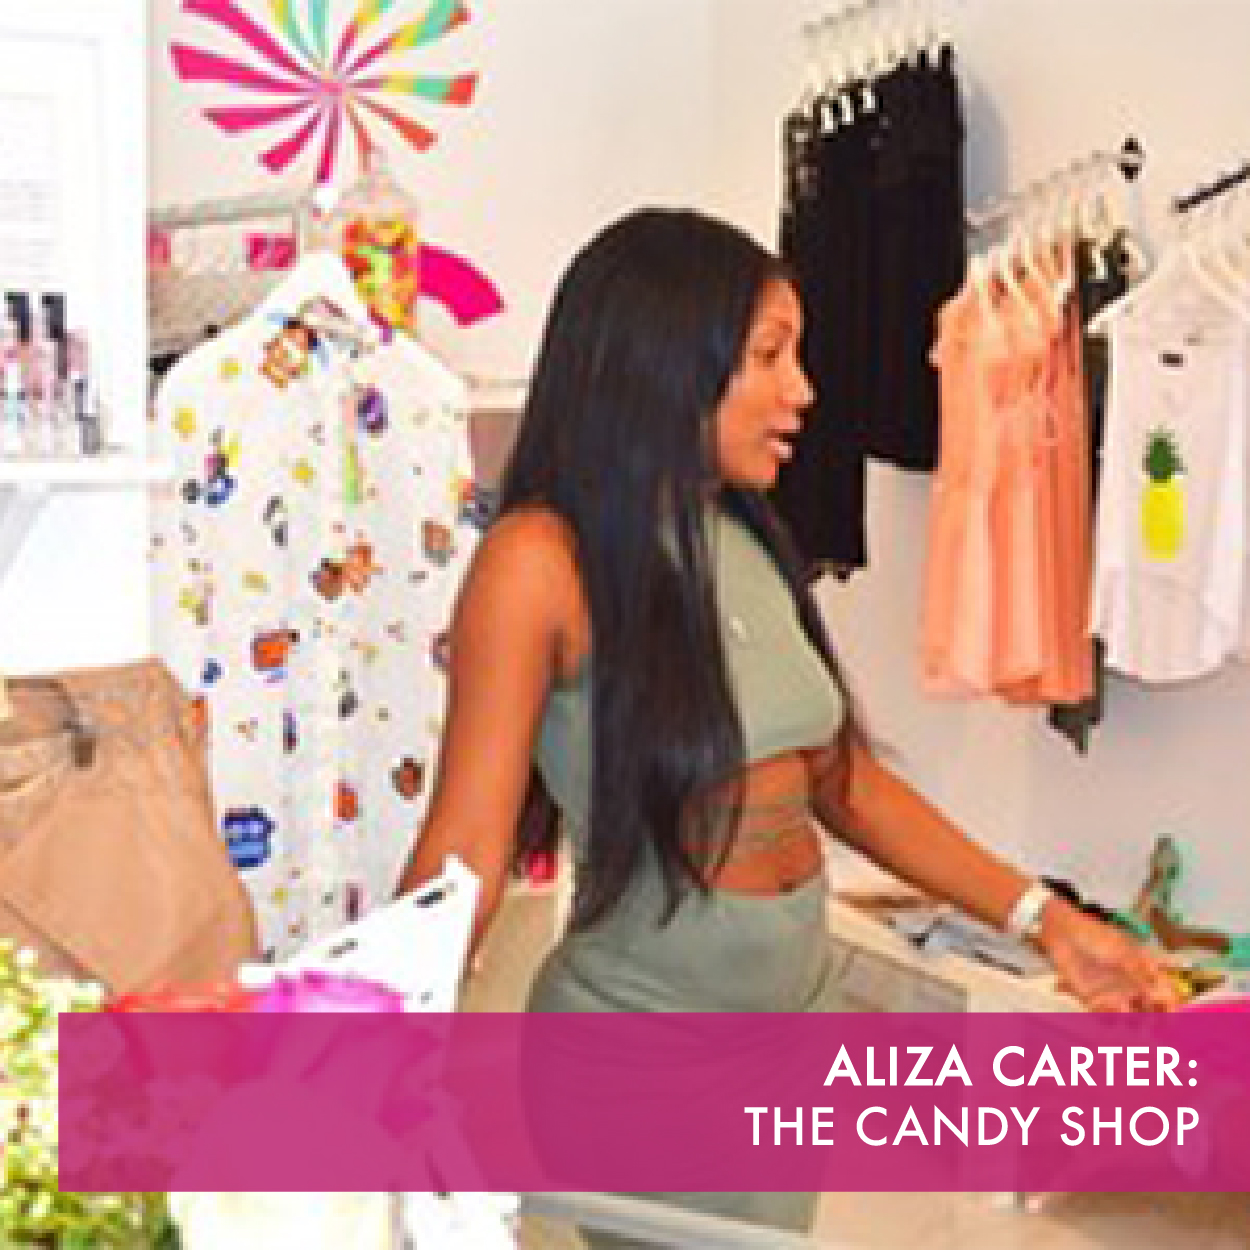 THE CANDY SHOP is a whimsical casual boutique of clothing and hair extensions for women who appreciate standing out.